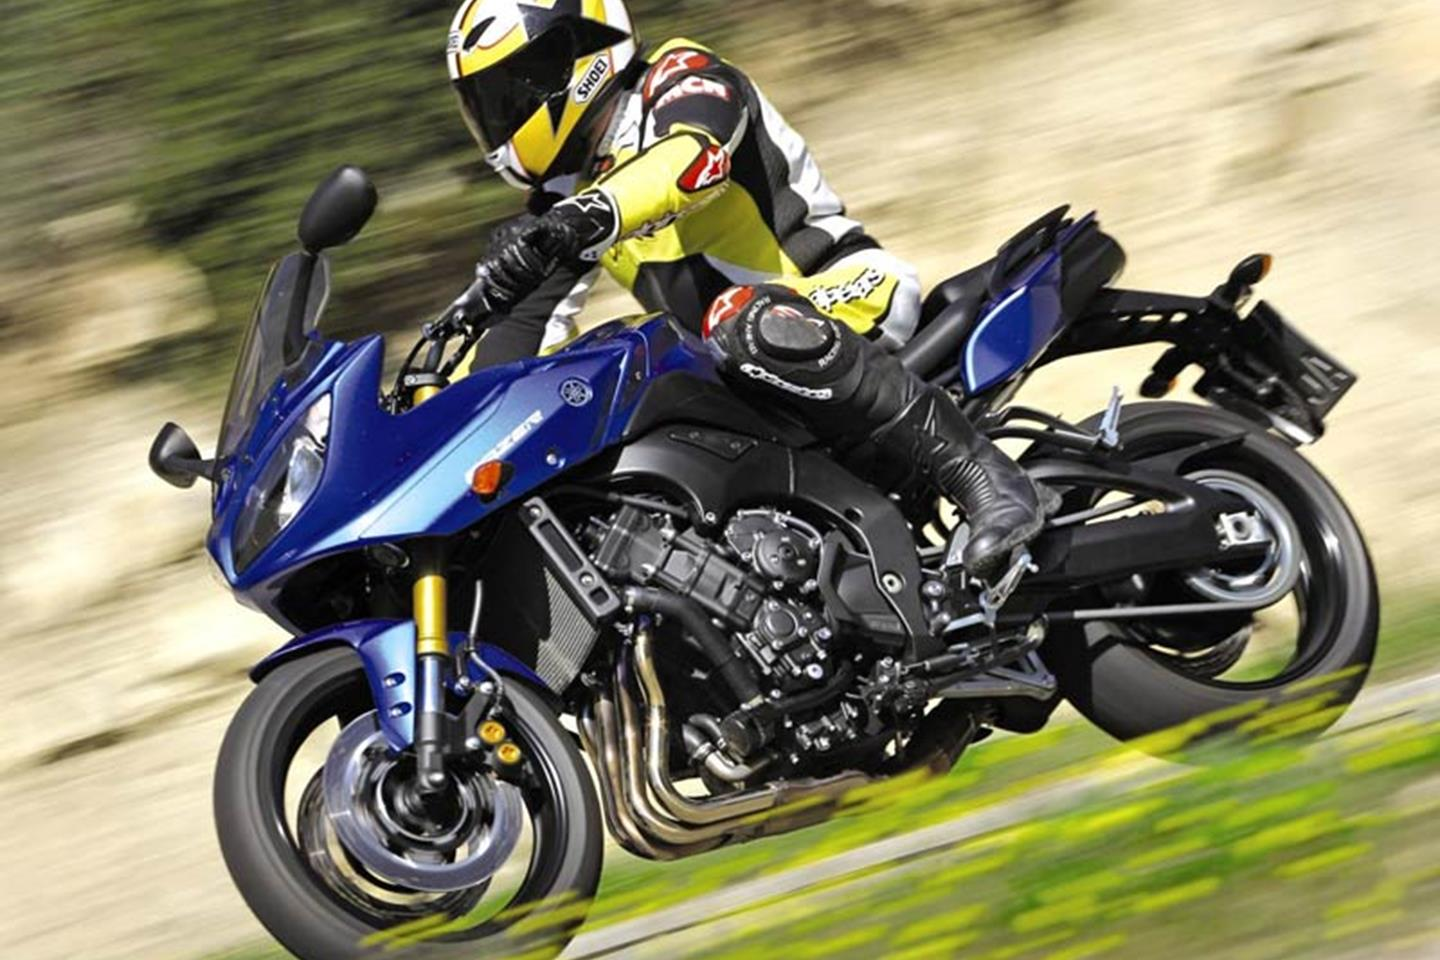 2010 Yamaha FZ8 / ABS - Picture 353281 | motorcycle review